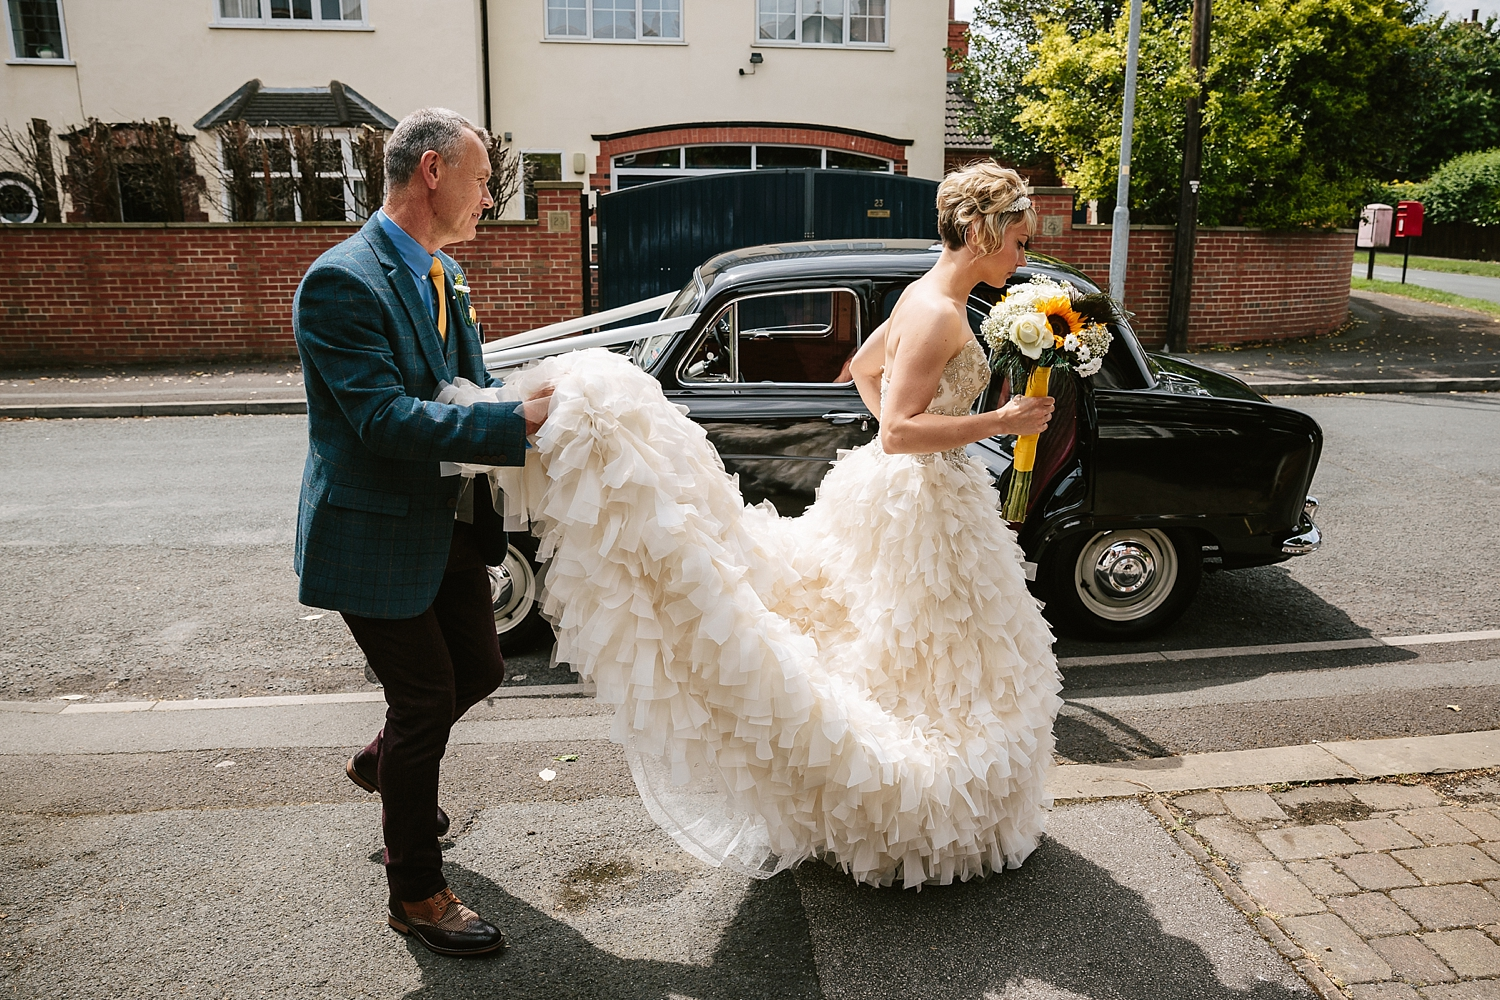 Natlie-Matthew-yorkshire-natural-relaxed-fun-documentary-reportage-candid-wedding-photography-photographer-Derby-Nottingham-Derbyshire-Nottinghamshire-Leicestershire-Lincolnshire-East-Midlands-33.jpg